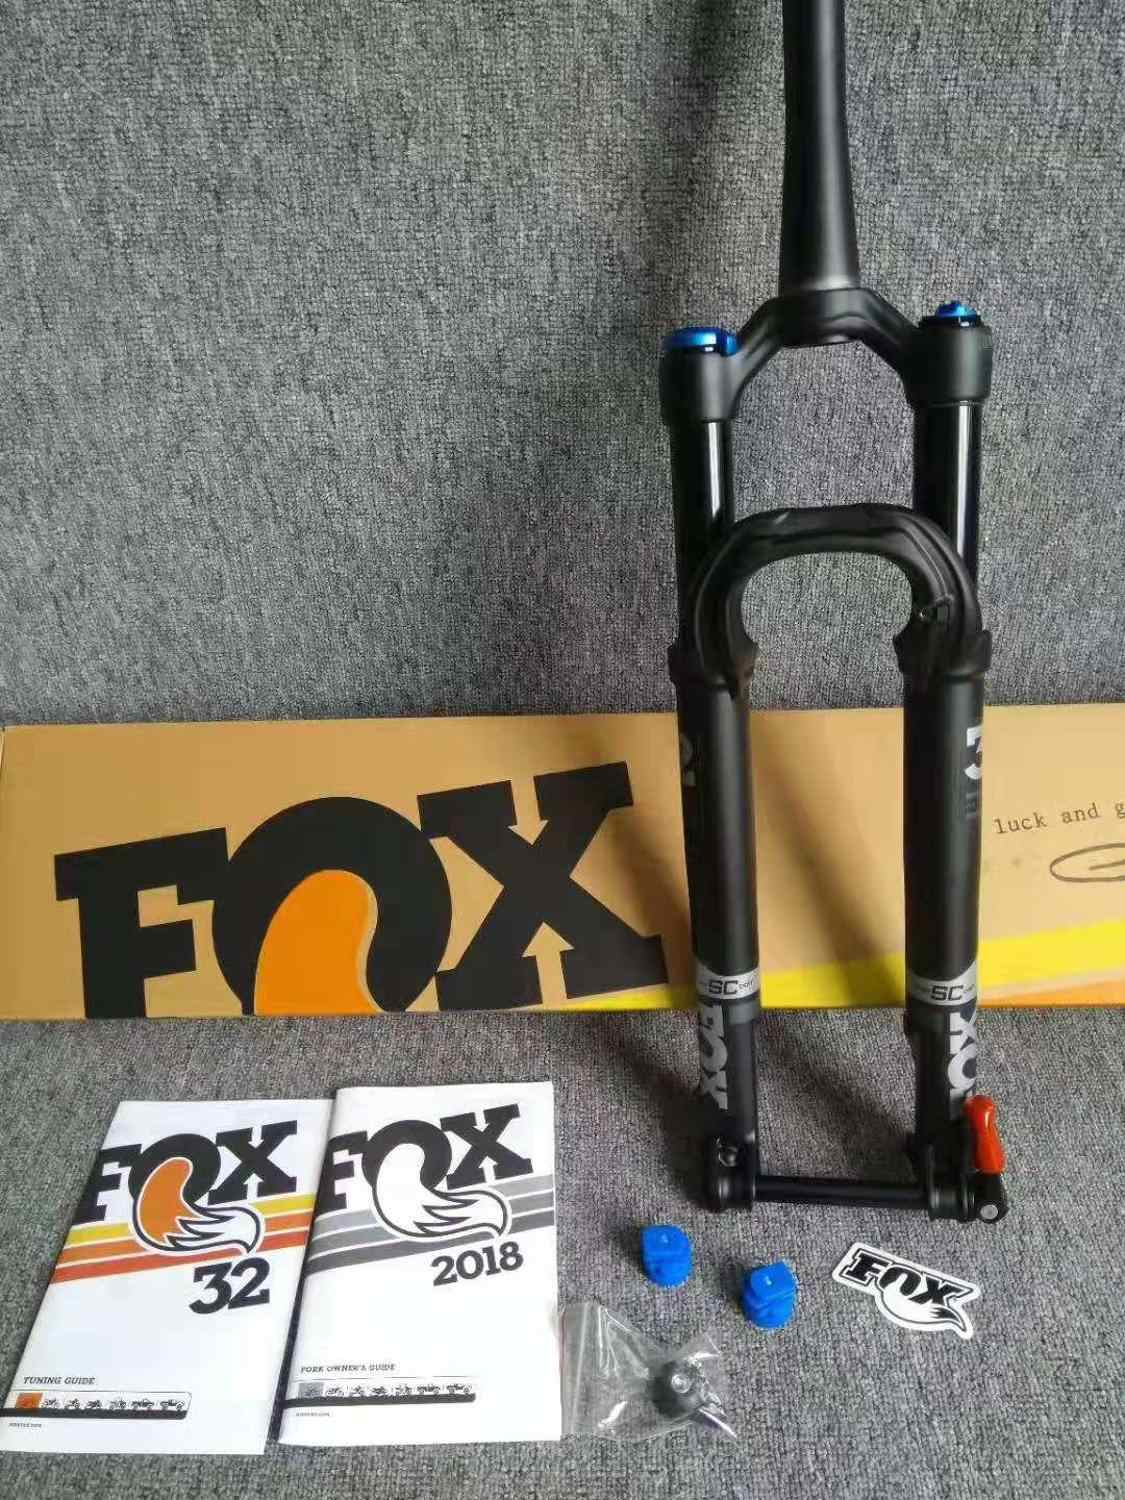 "2018 27.5"" 29 Fox Fork Performance Series 32 FIT 4 SC CAST 100mm travel MTB MOUNTAIN BIKE FORK 15MM*100MM through axle black"